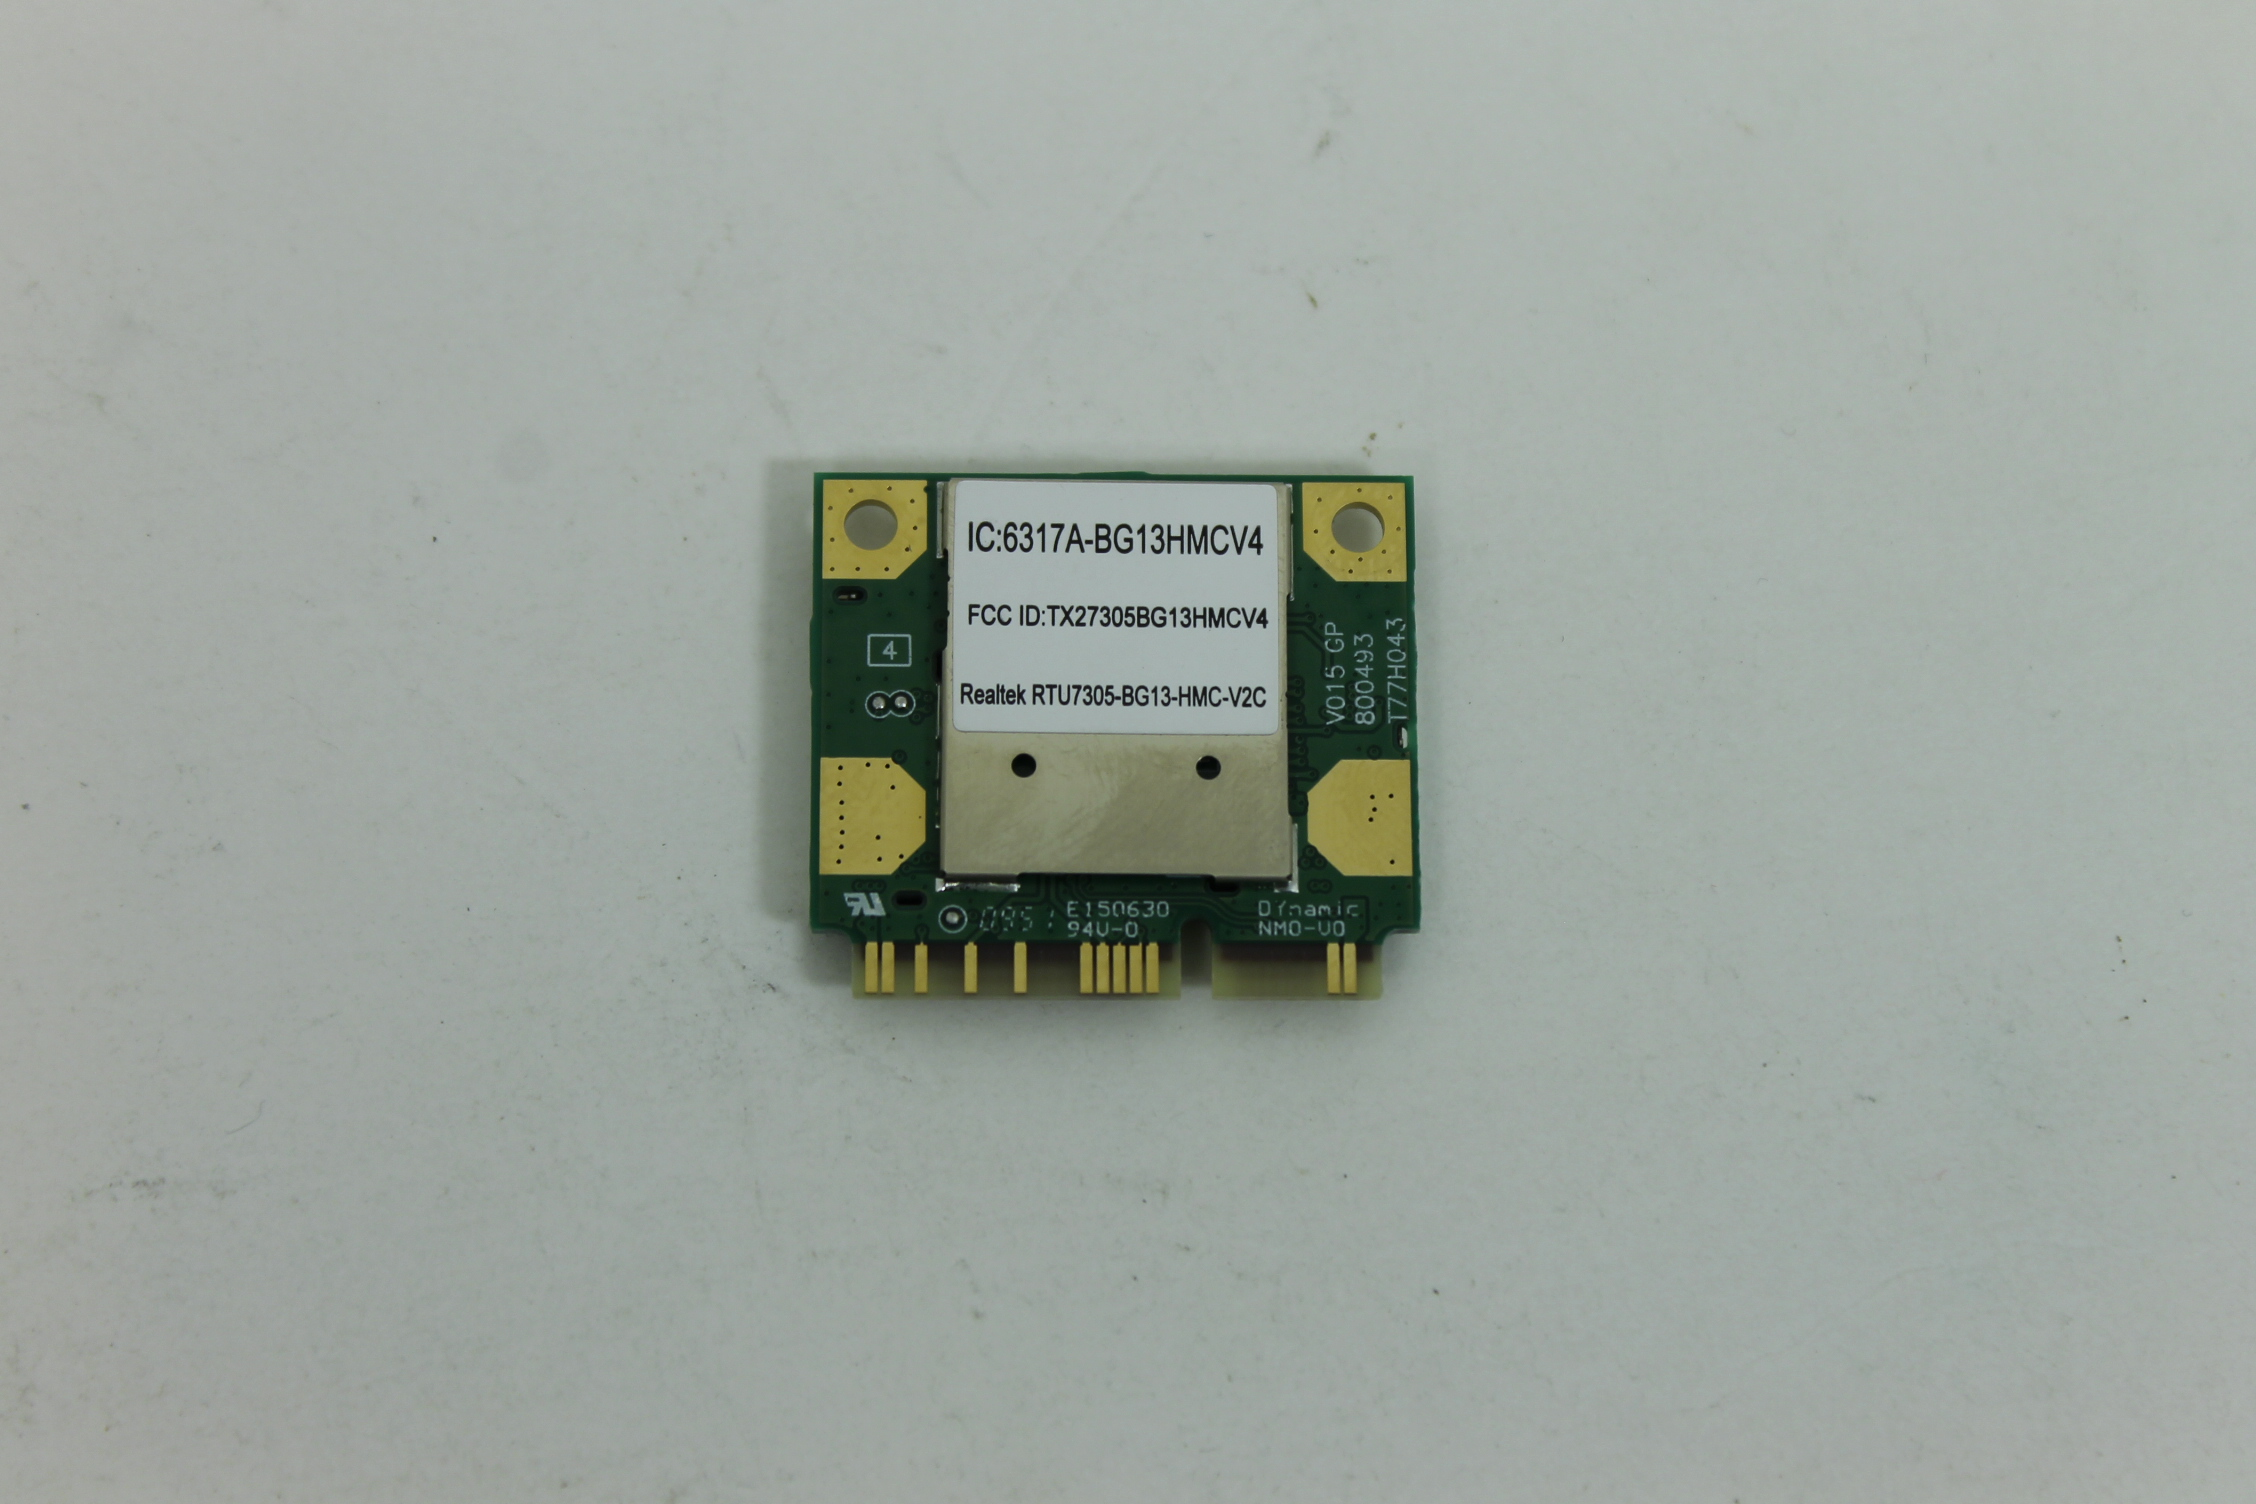 DELL Z600 BLUETOOTH 64BIT DRIVER